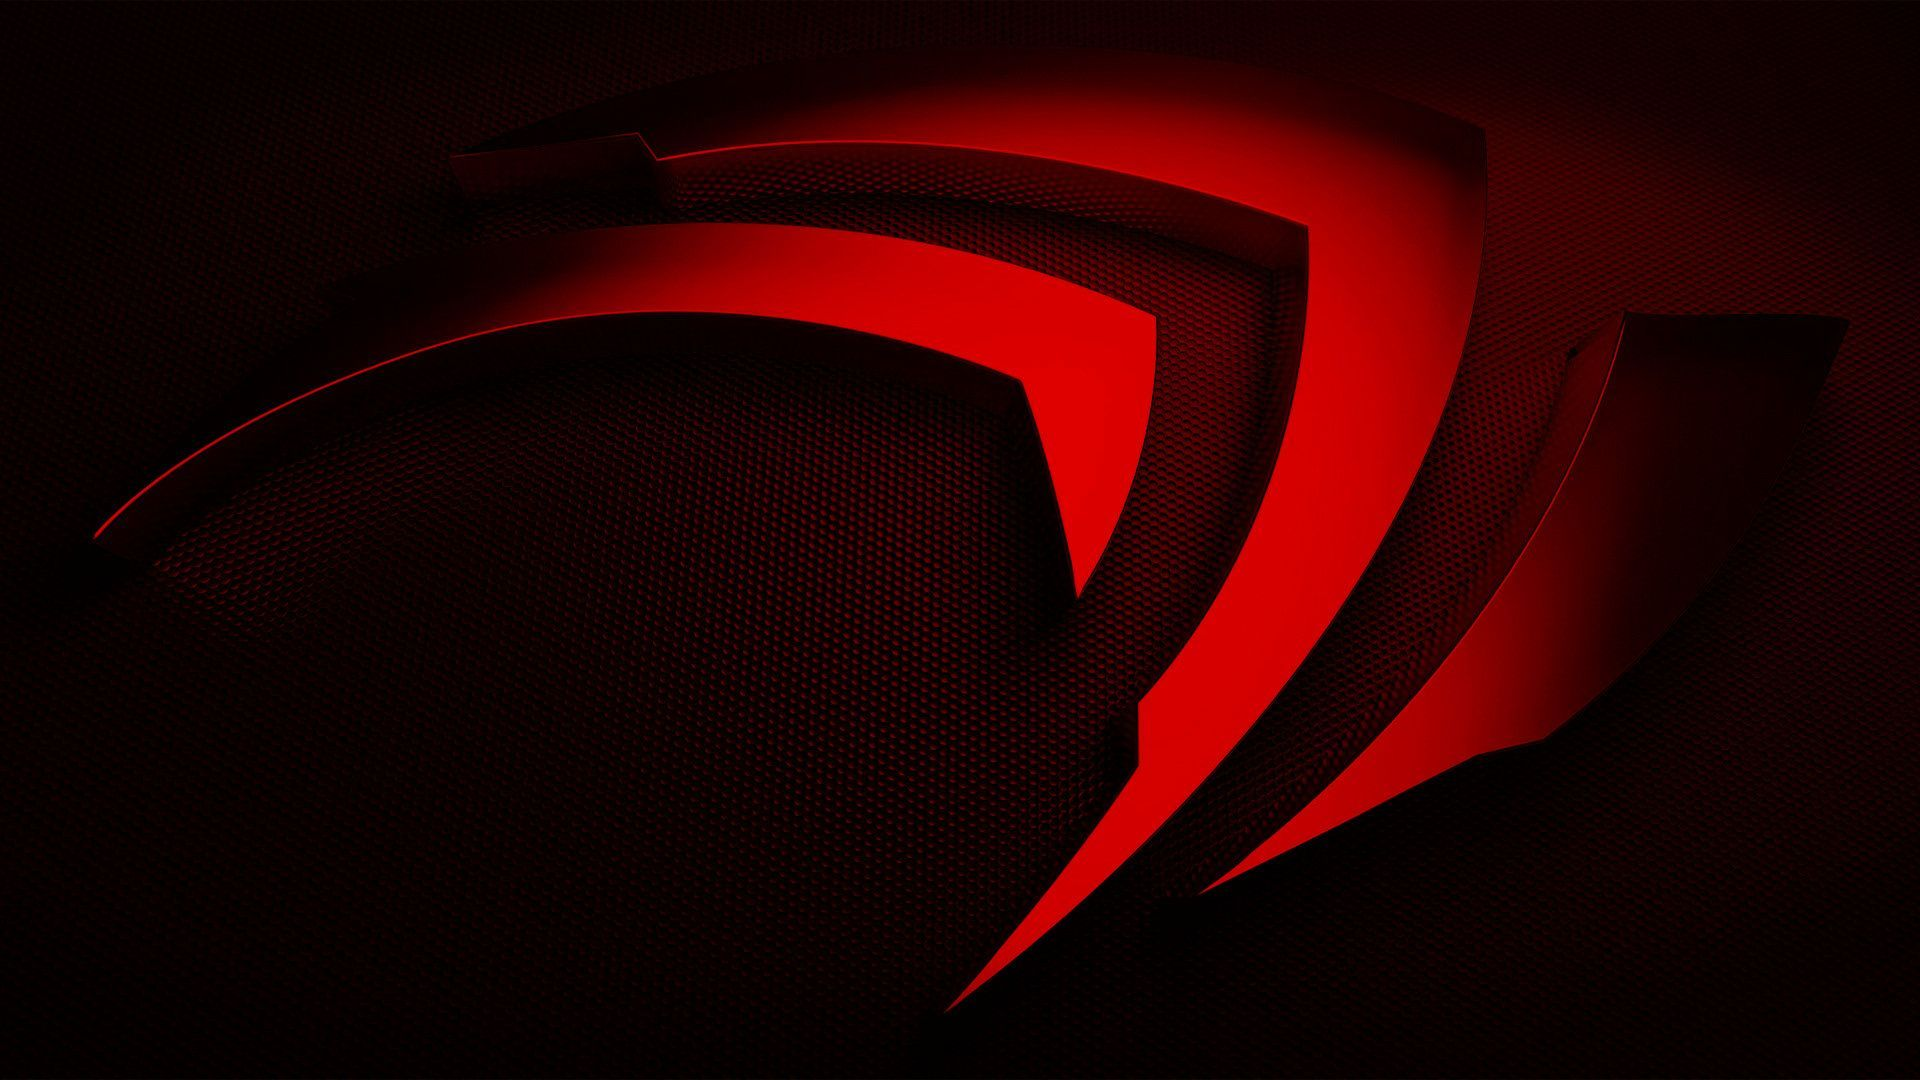 1920x1080 Nvidia Red Wallpaper 73 Images Gaming Wallpapers Wallpaper Computer Wallpaper Desktop Wallpapers